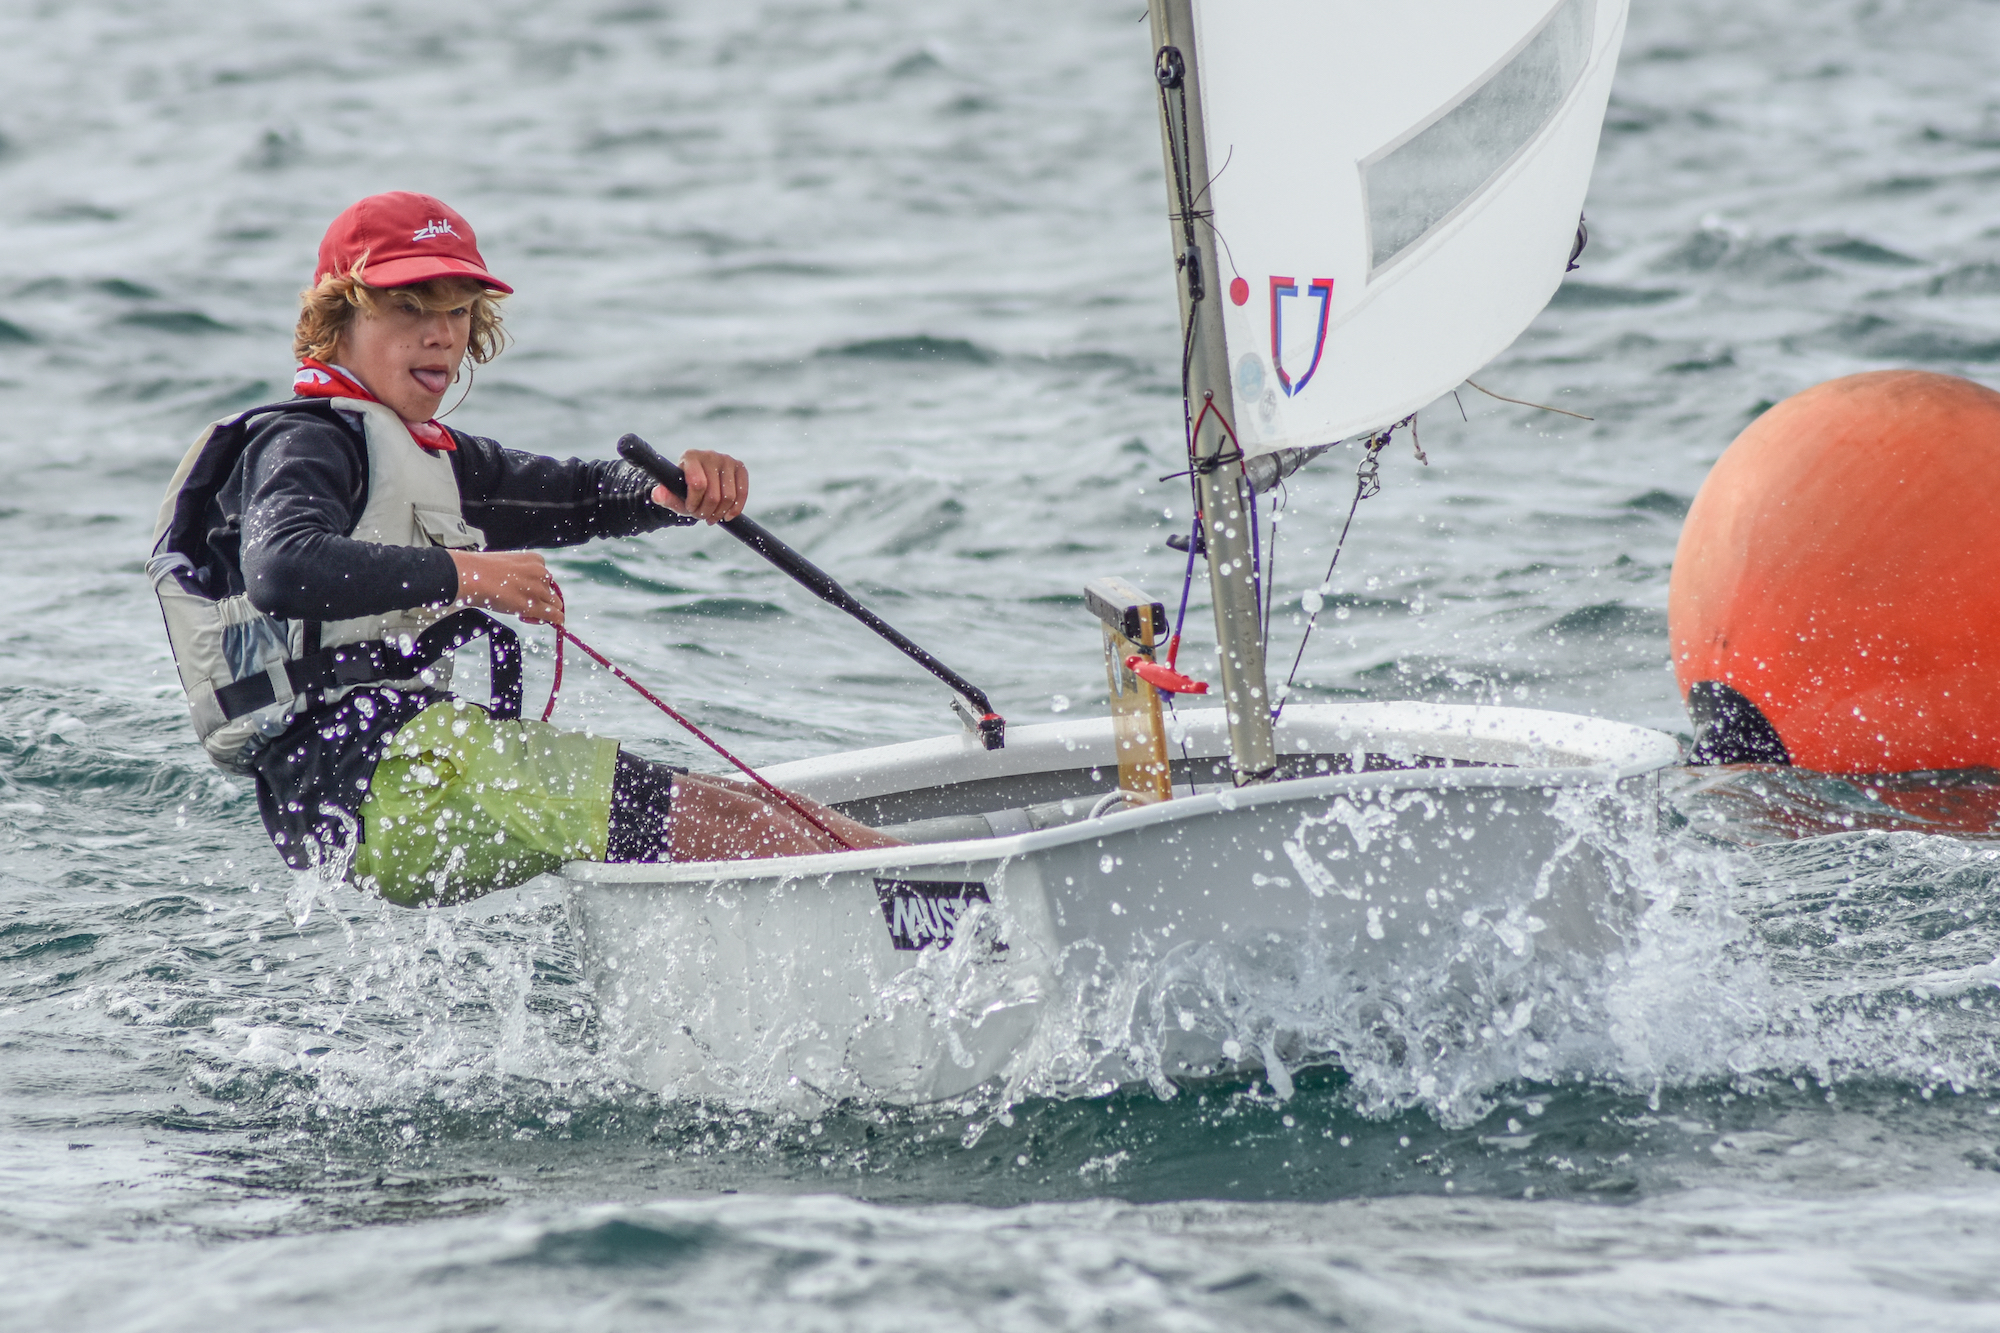 Fluky conditions kick off racing at Musto SA Optimist States